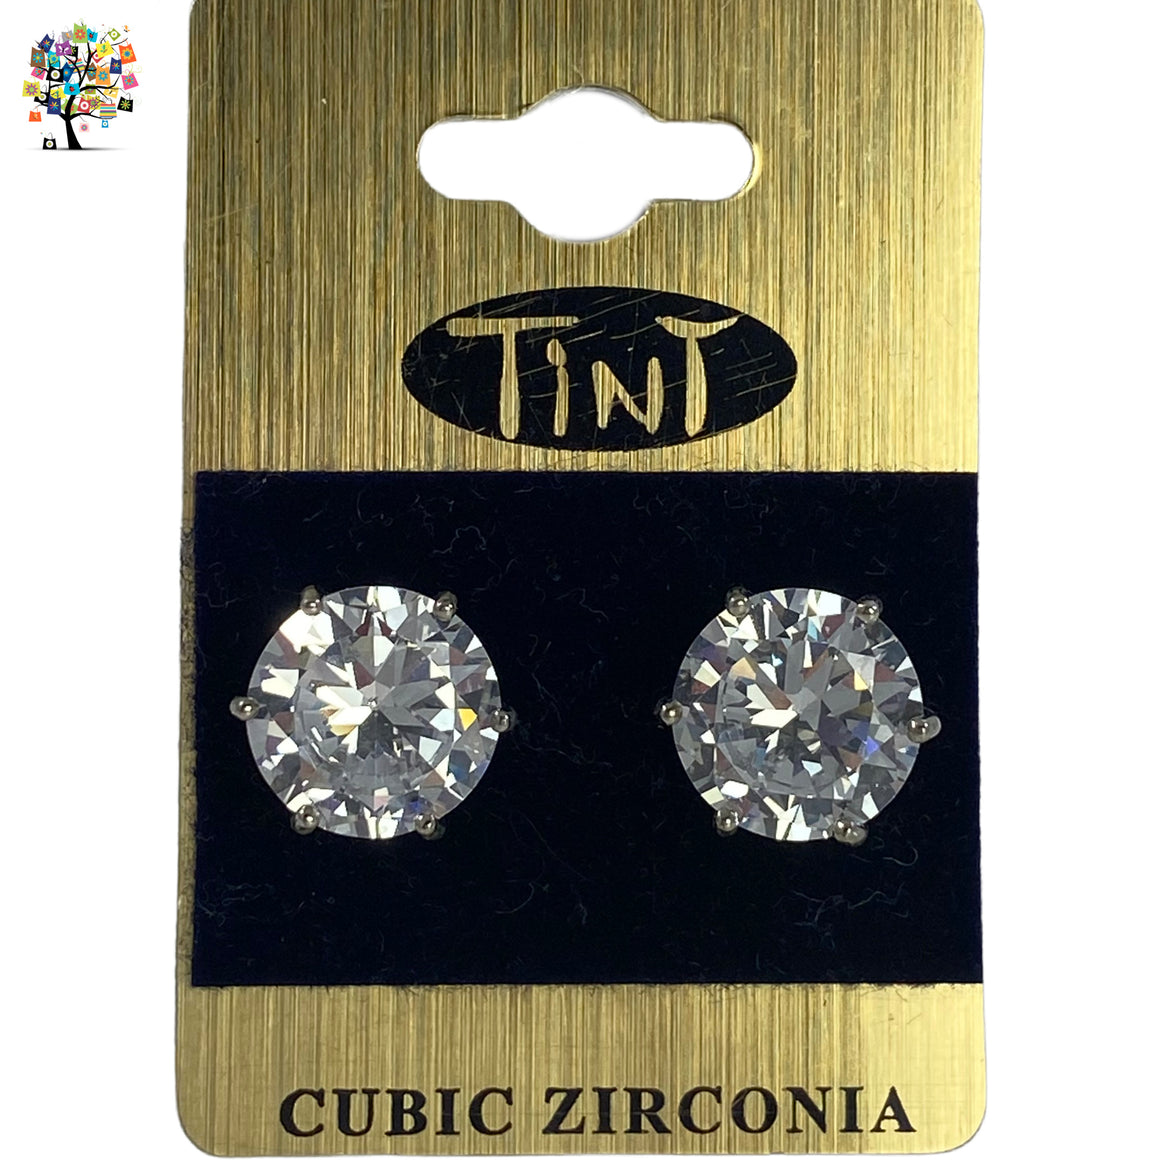 Cubic Zirconia Earrings Round Silver Plated Stud 13mm